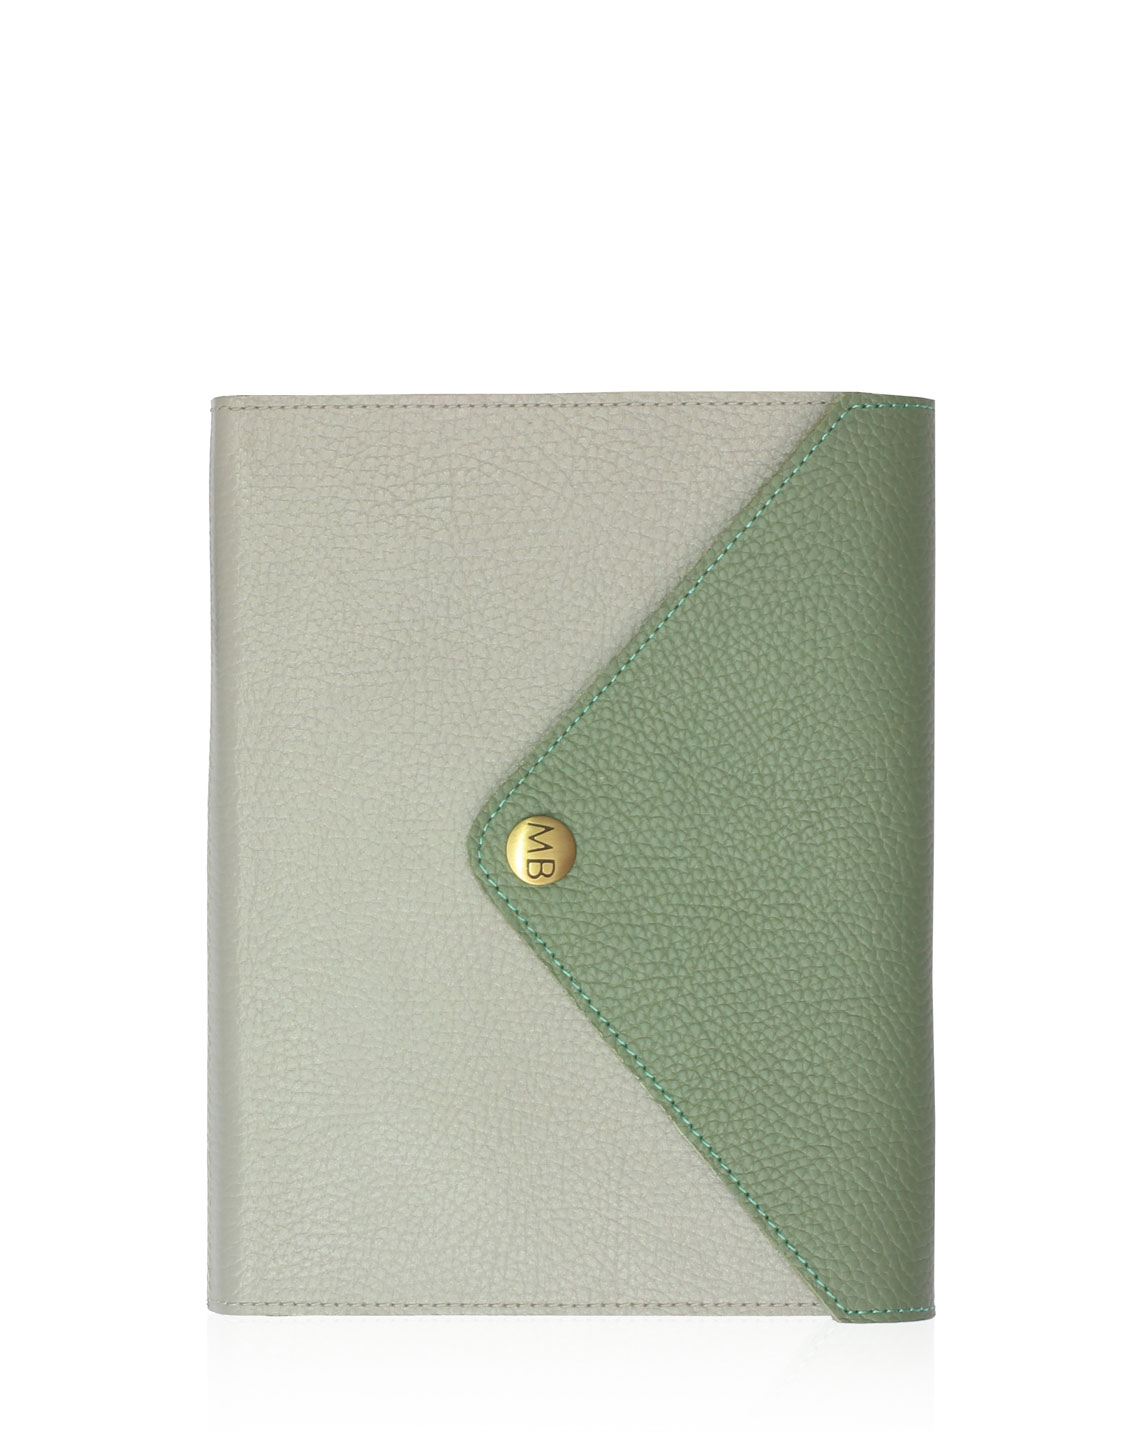 Agenda AG-101 Color Gris